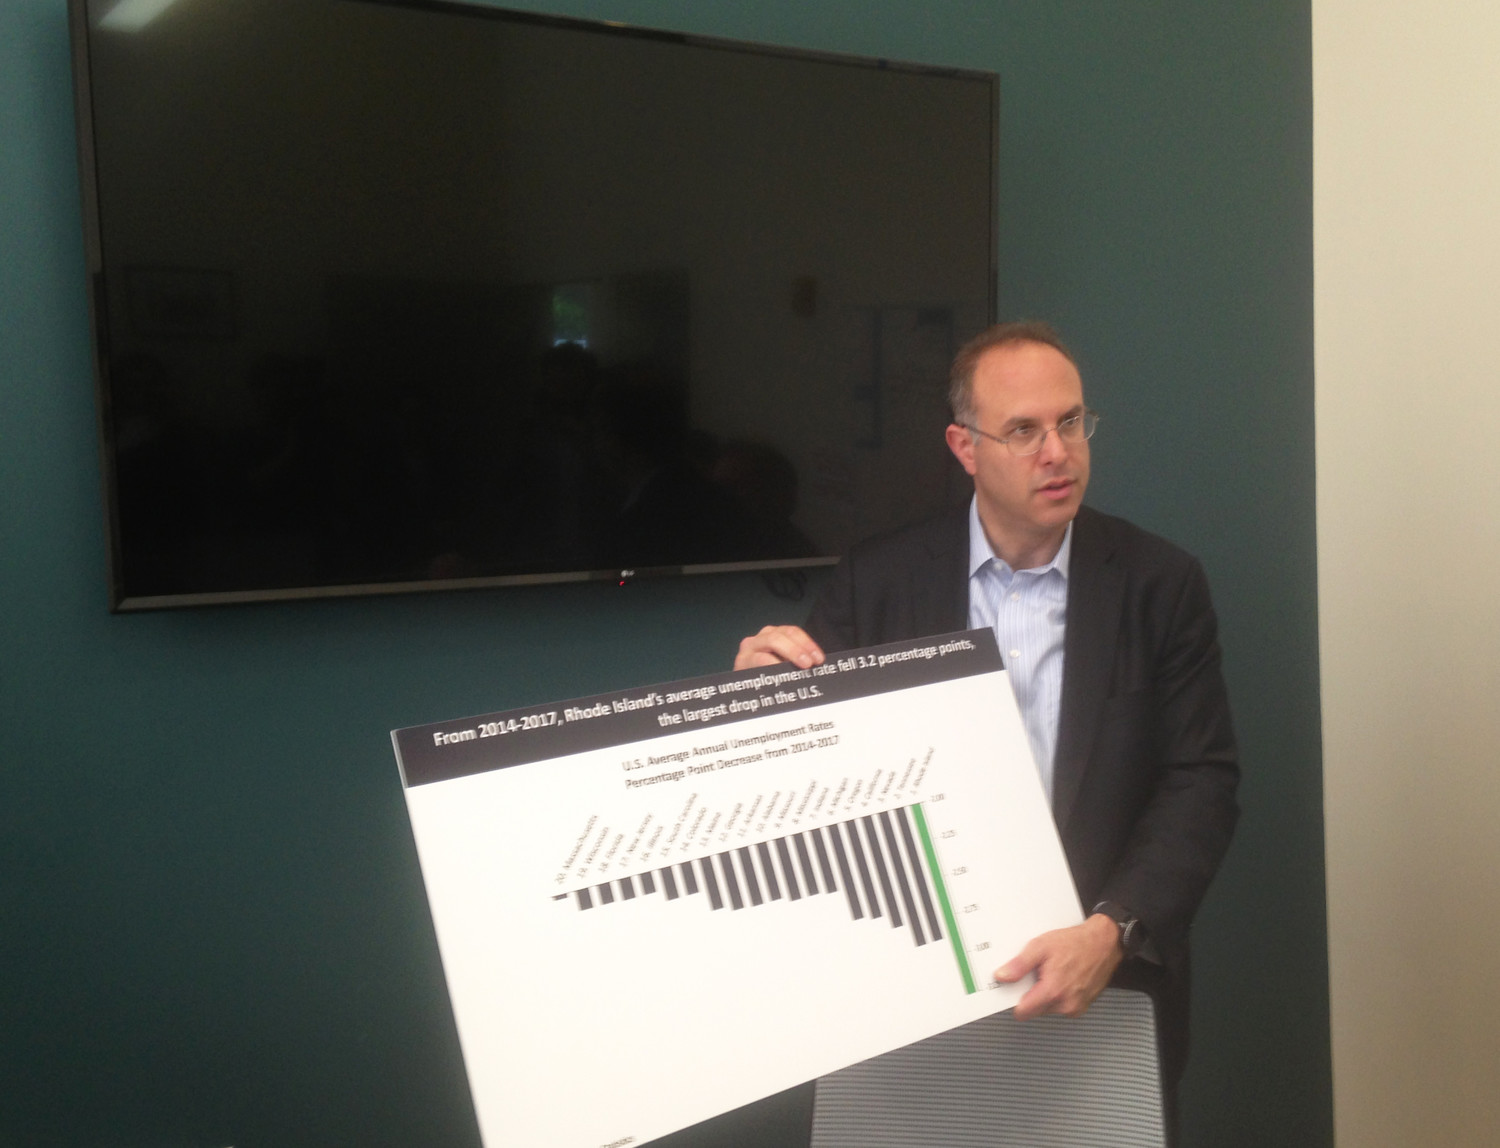 CommerceRI Secretary Stefan Pryor offers details of Rhode Island's economic development achievements in 2017, in a conference room at The Edge.